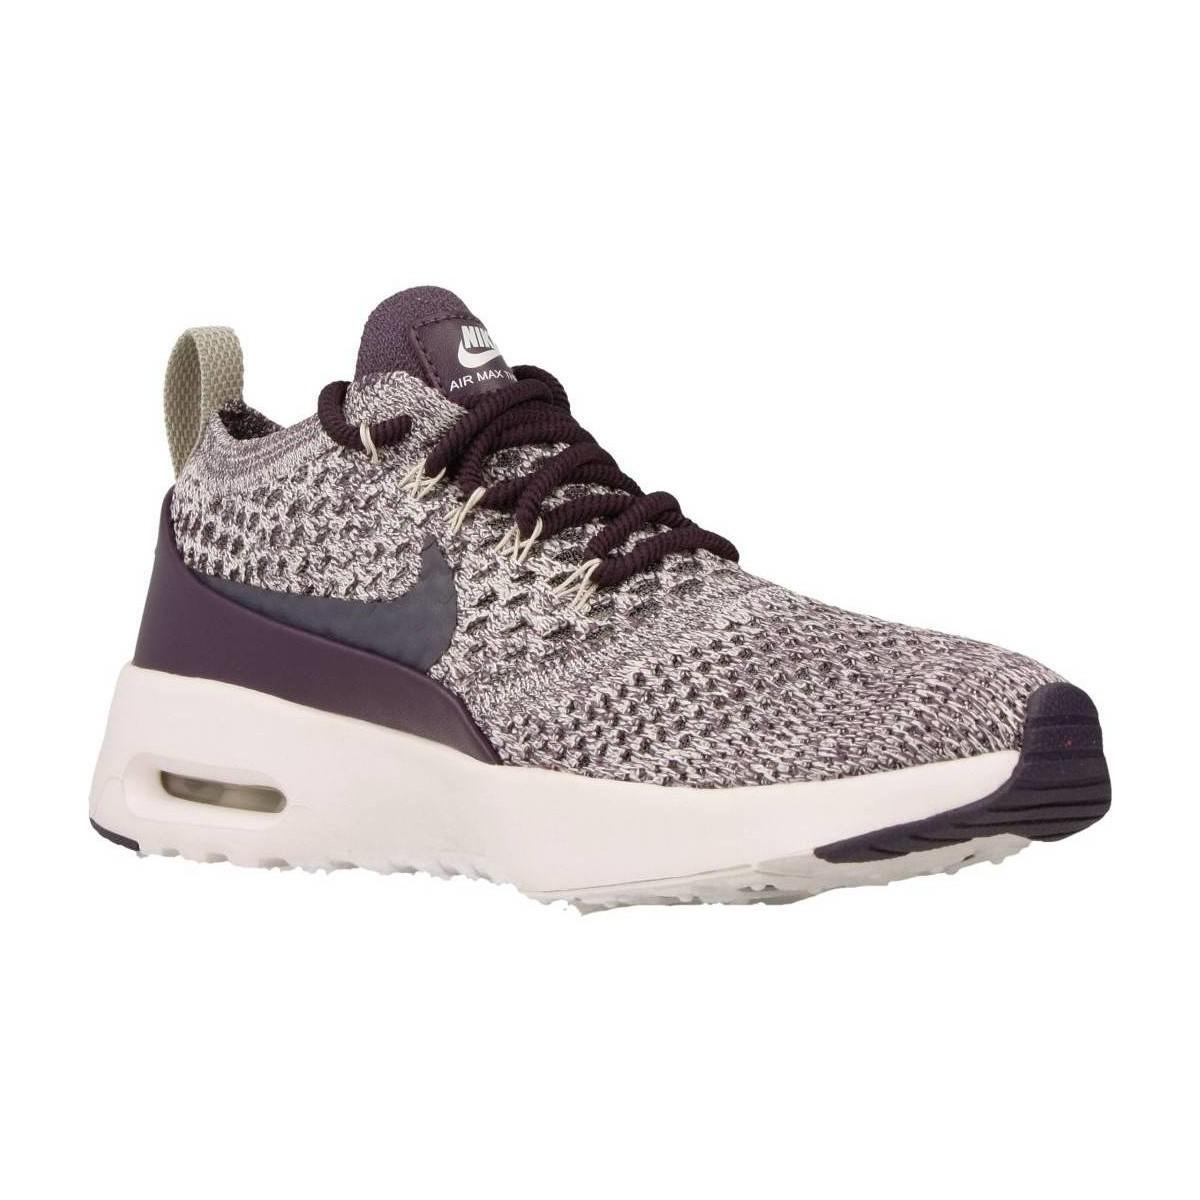 cb3c72699ff46 Nike - Air Max Thea Ultra Fk Women's Shoes (trainers) In Purple - Lyst